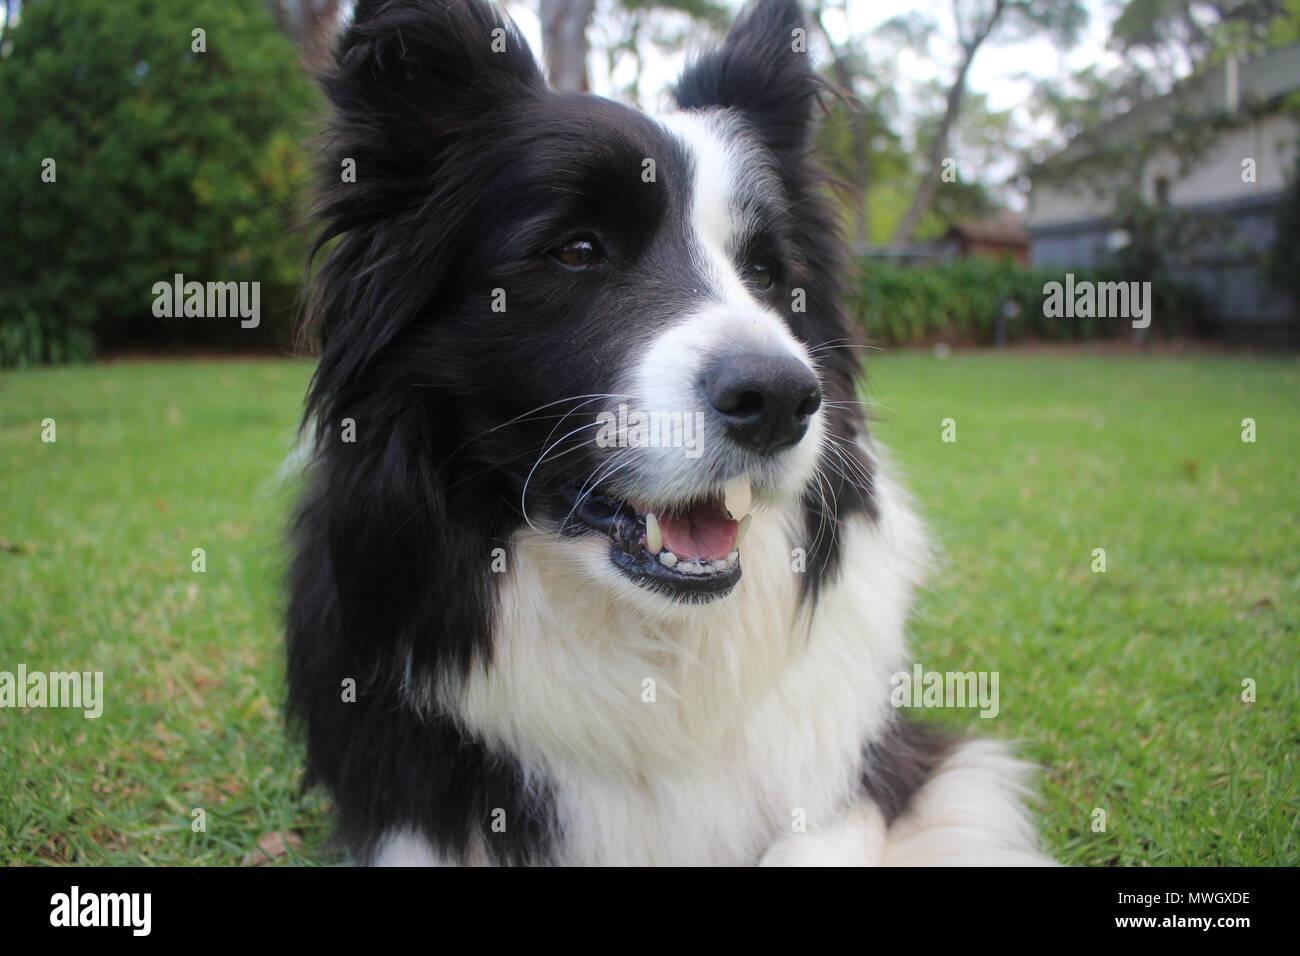 A purebred black and white Border Collie smiling - Stock Image